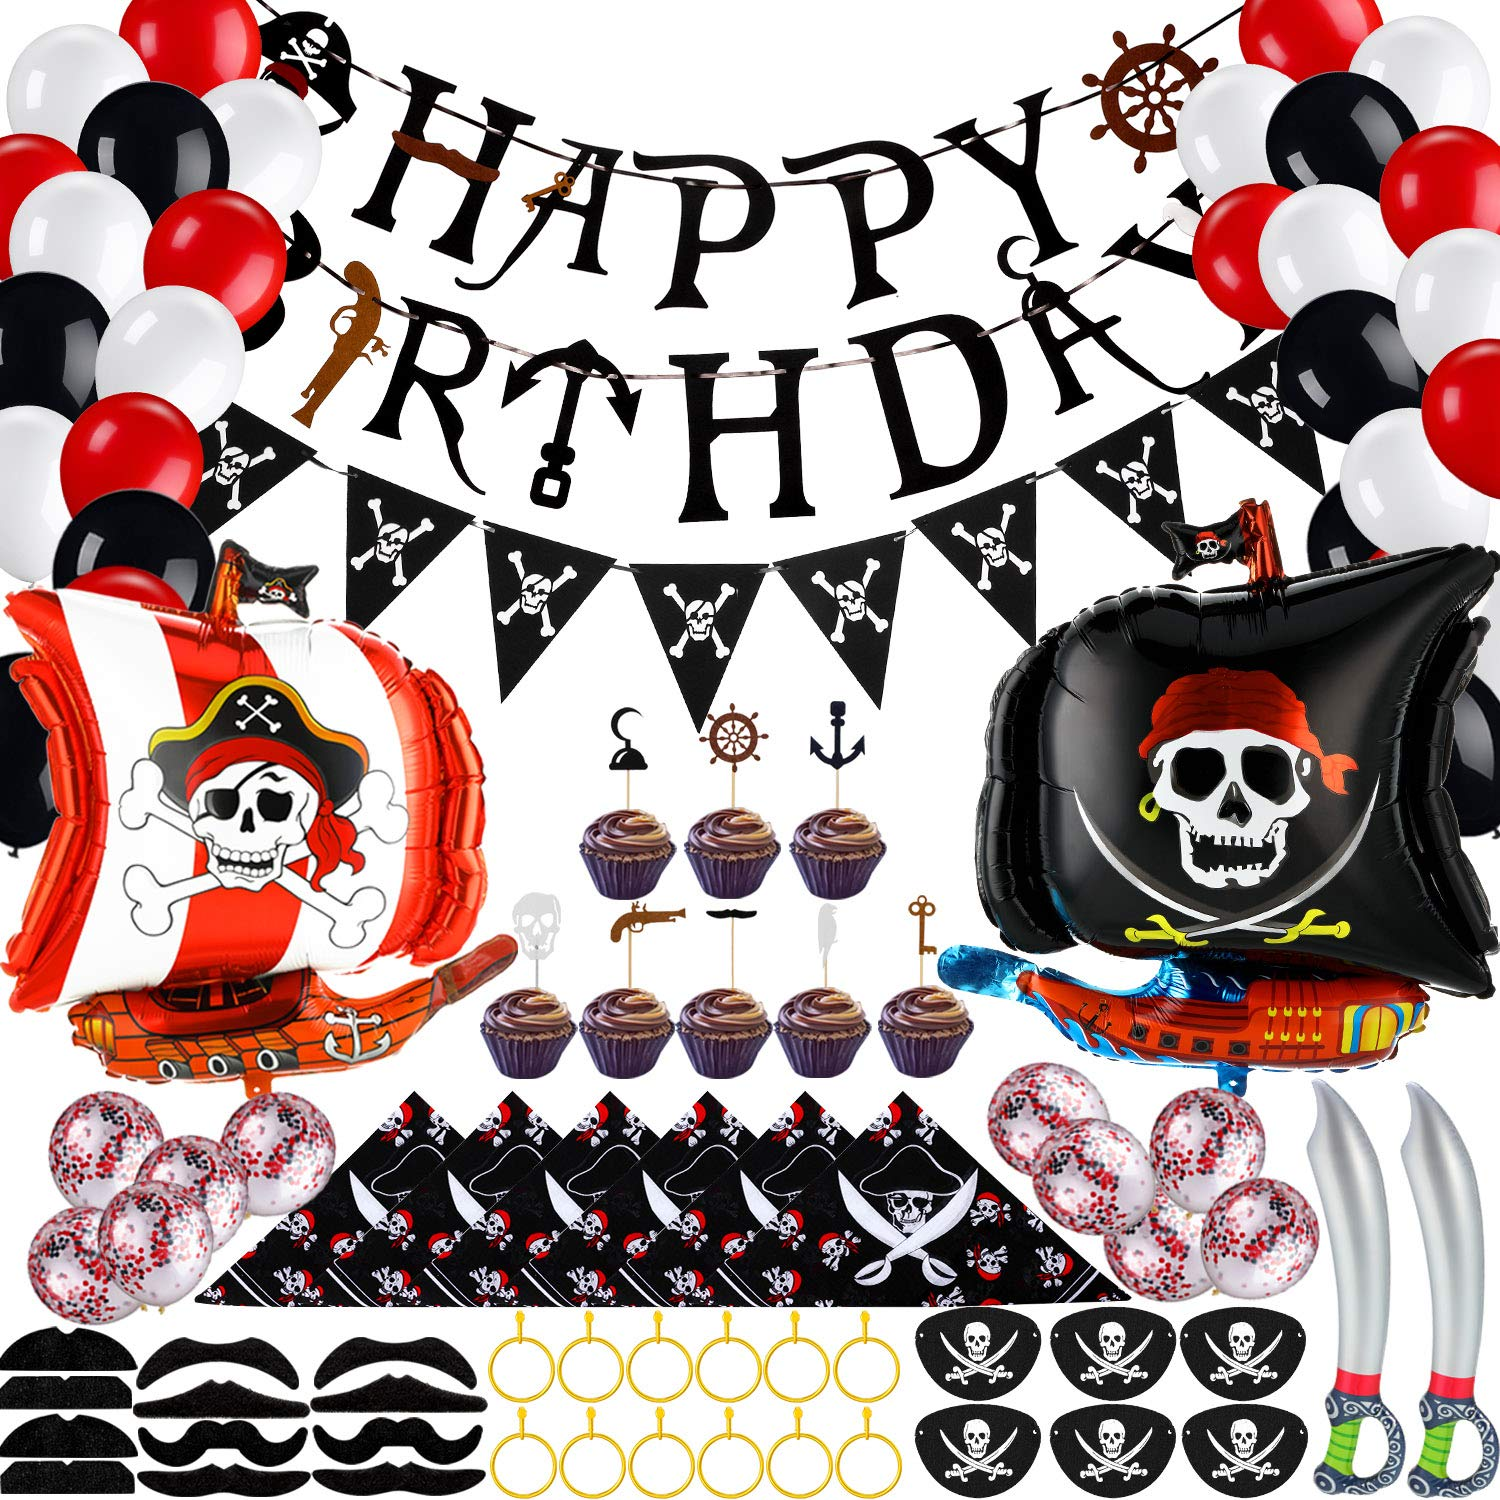 98 Pieces Pirate Birthday Party Decoration, Pirate Birthday Banner Balloons Mustaches Cupcake Topper Captain Eye Patches Bandana Inflatable Sword Plastic Gold Earring for Pirate Theme Party Supplies